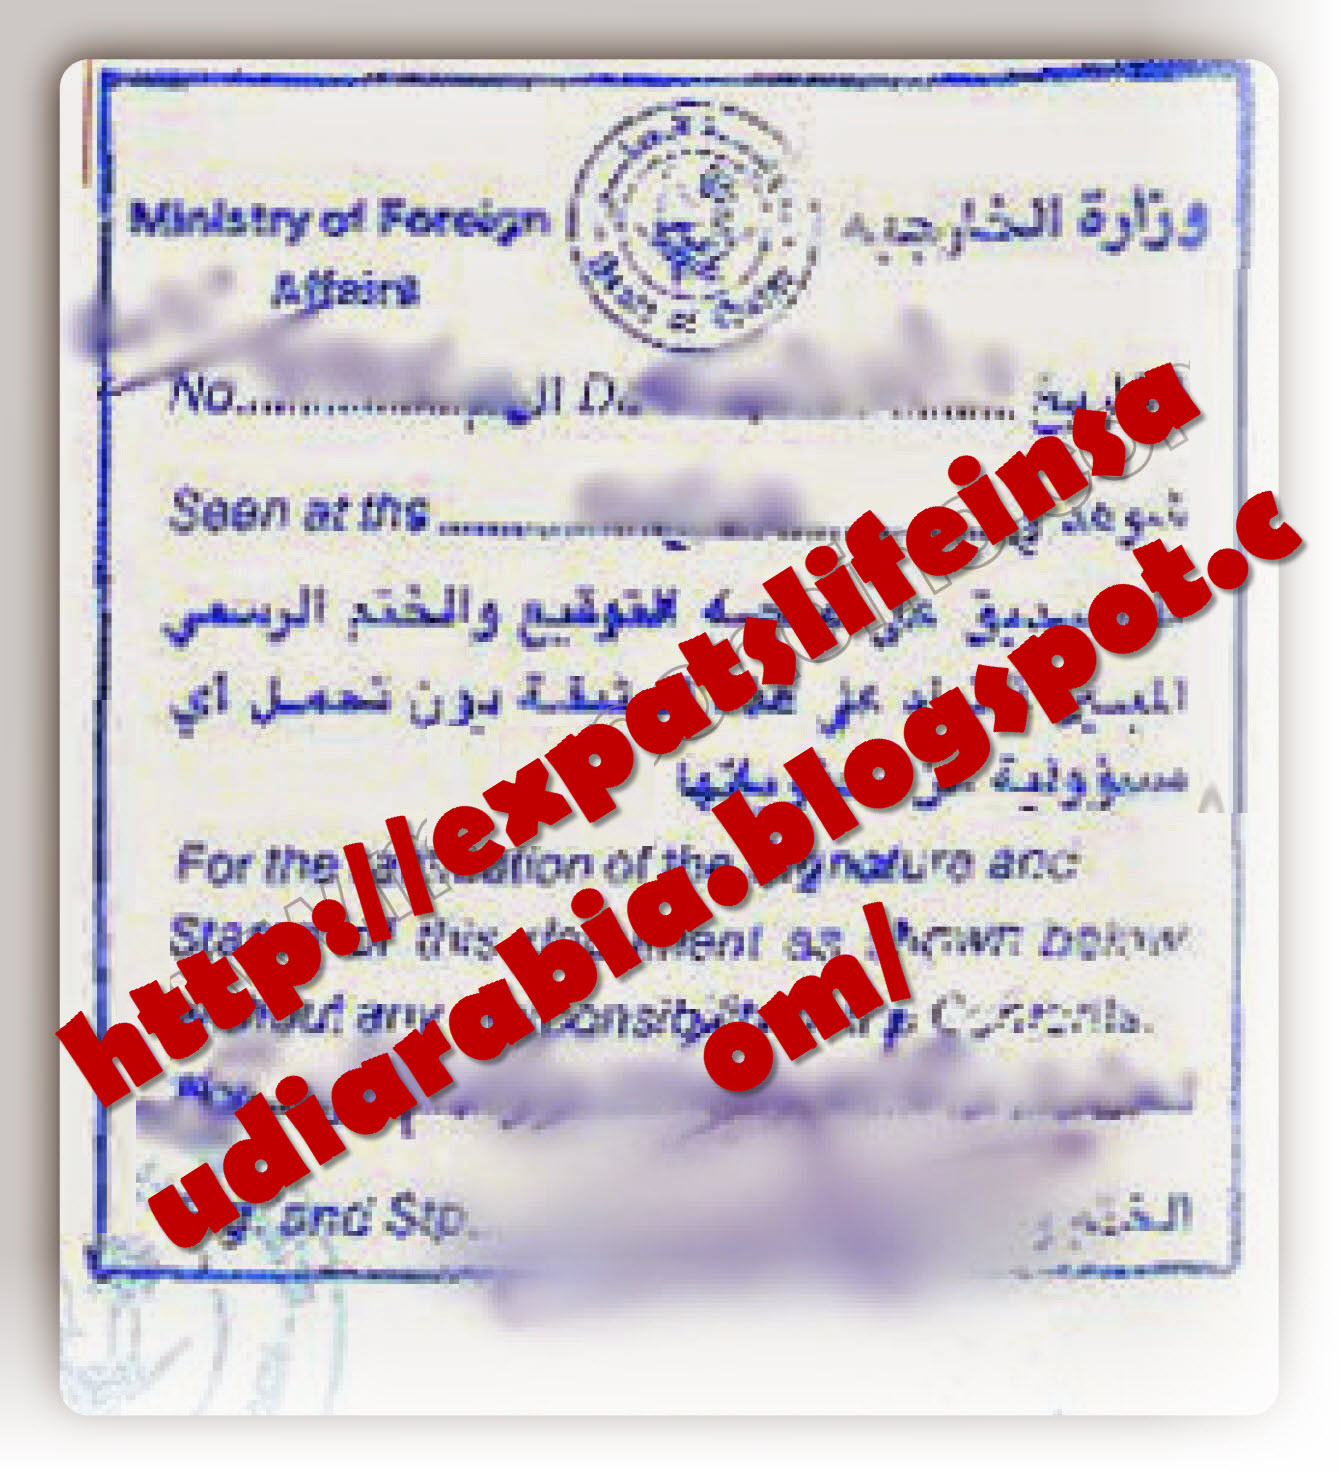 How to obtain police clearance certificate procedure to get police how to obtain police clearance certificate procedure to get police clearance certificate in saudi arabia altavistaventures Image collections